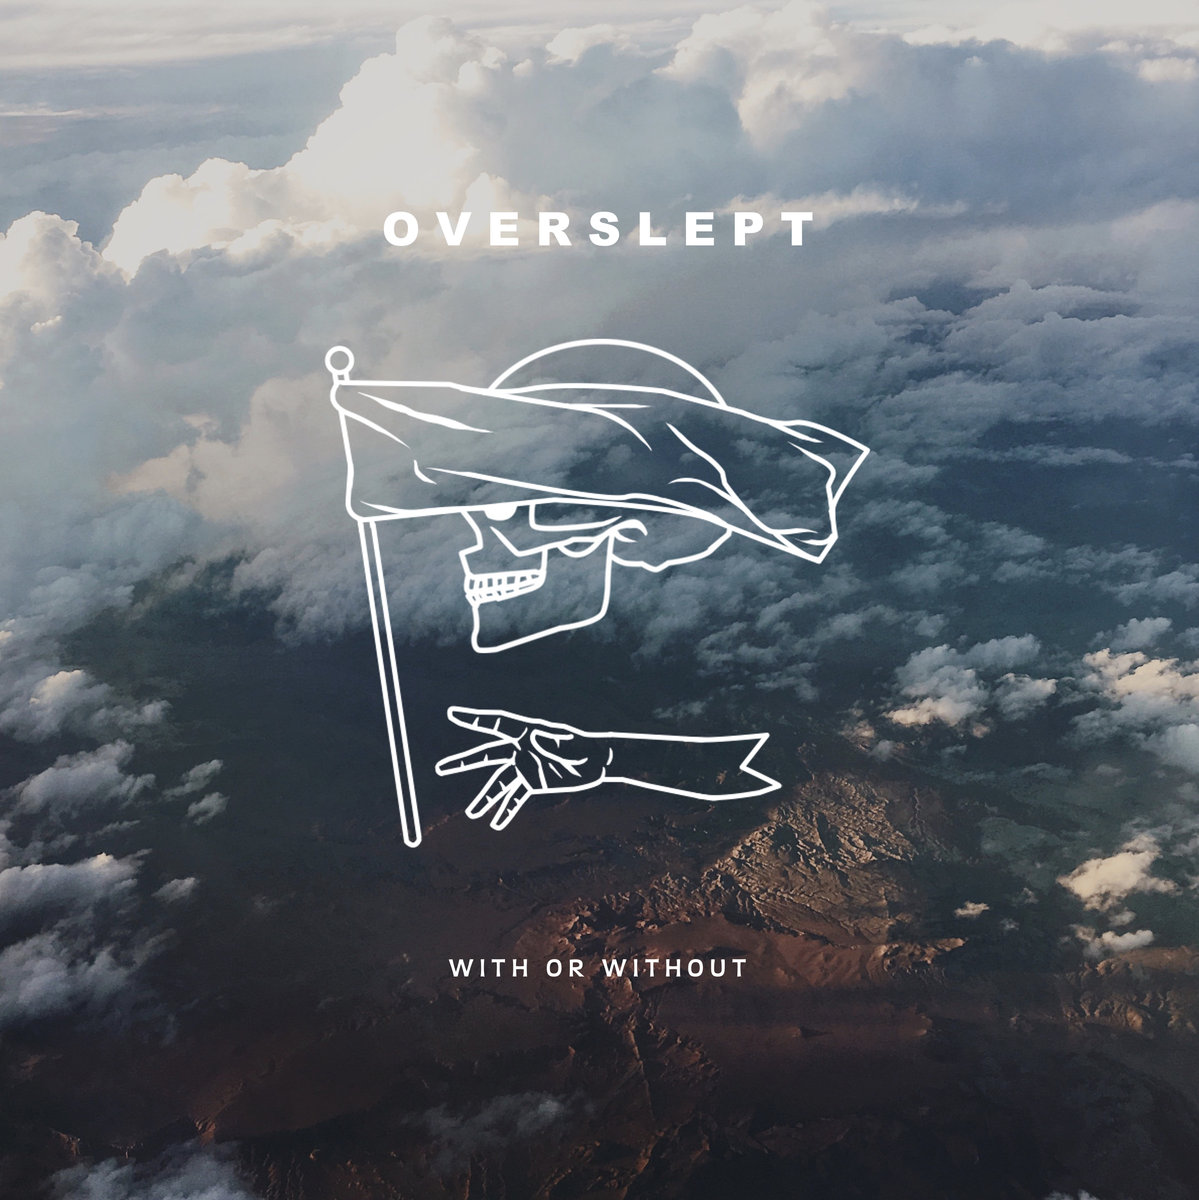 Review: With or Without by Overslept